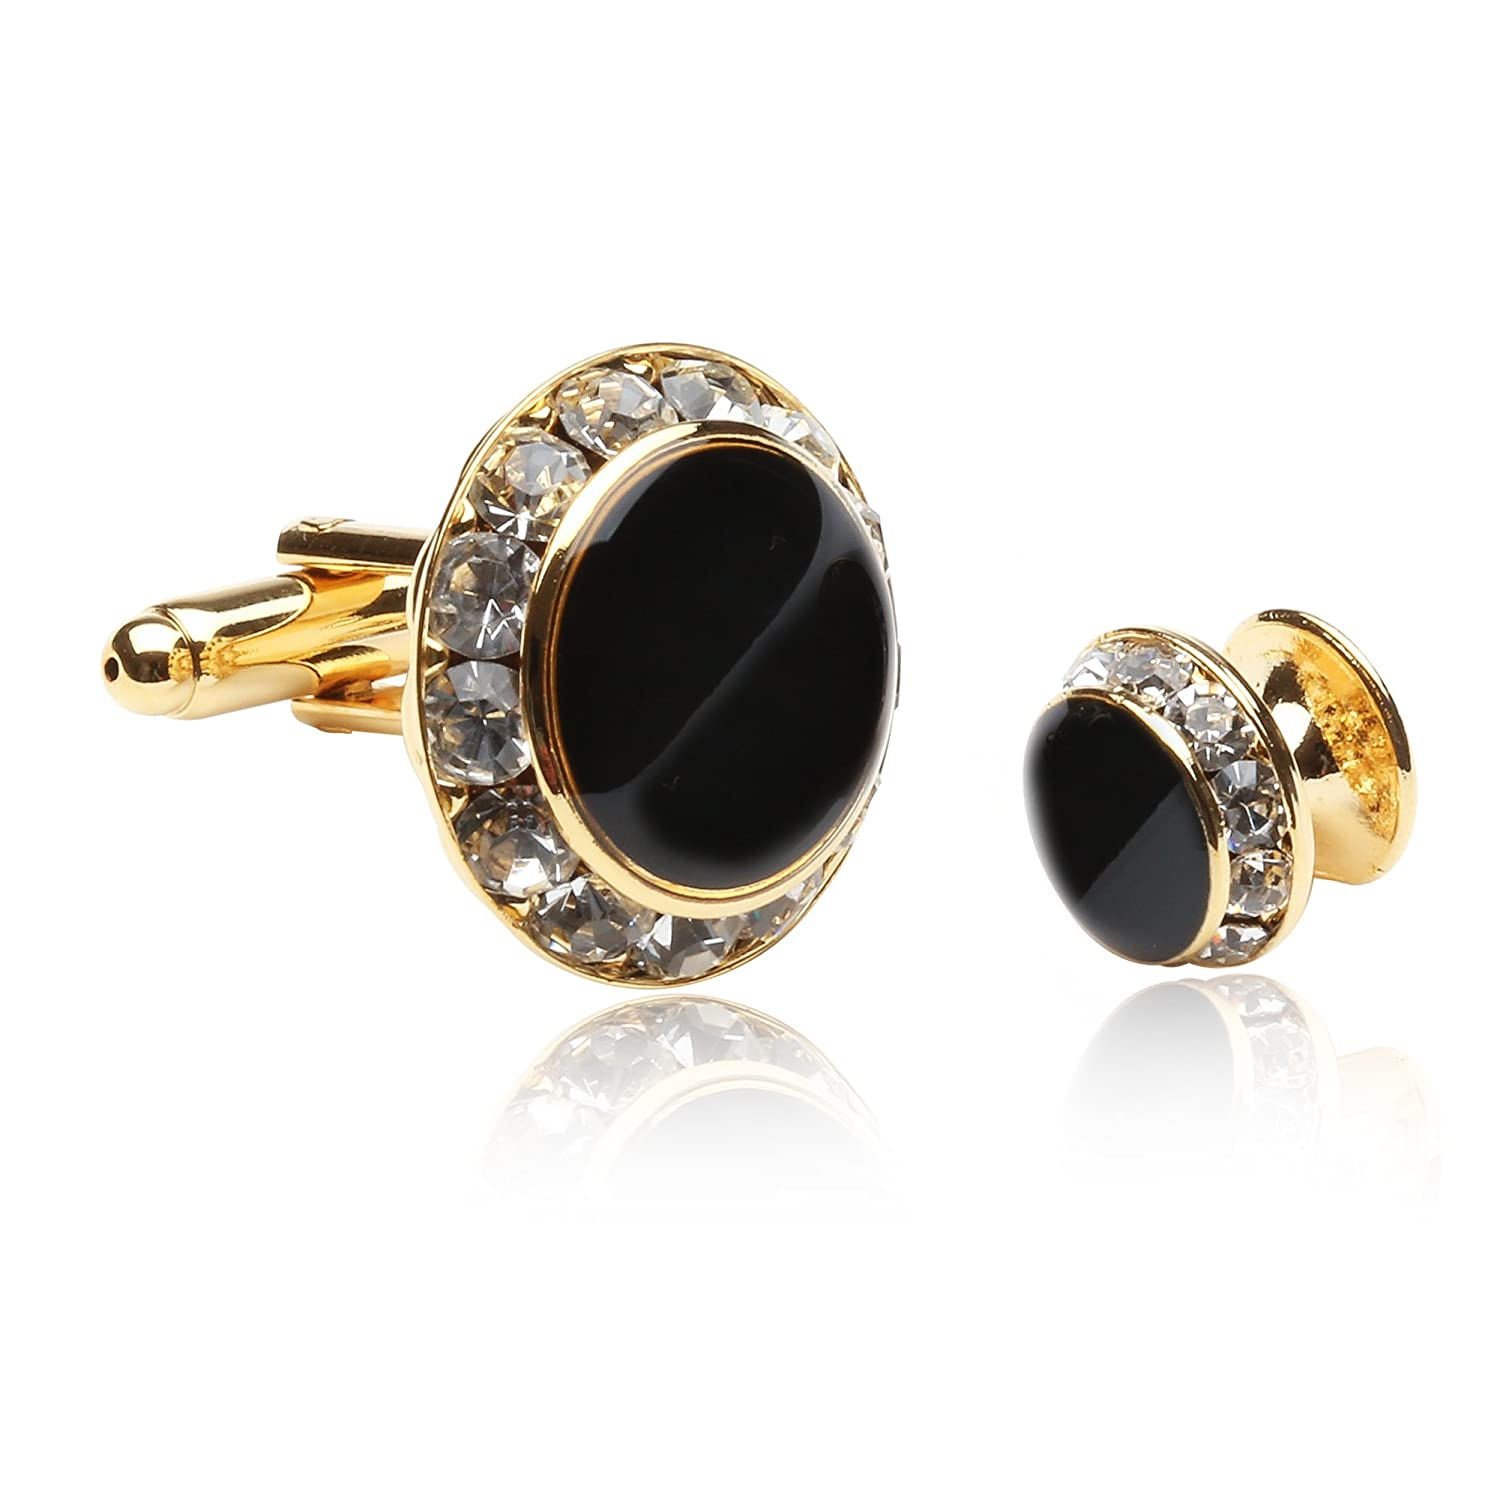 Enamel and CZ Gold-Plated Formal Set Cufflinks and Studs by Cuff-Daddy